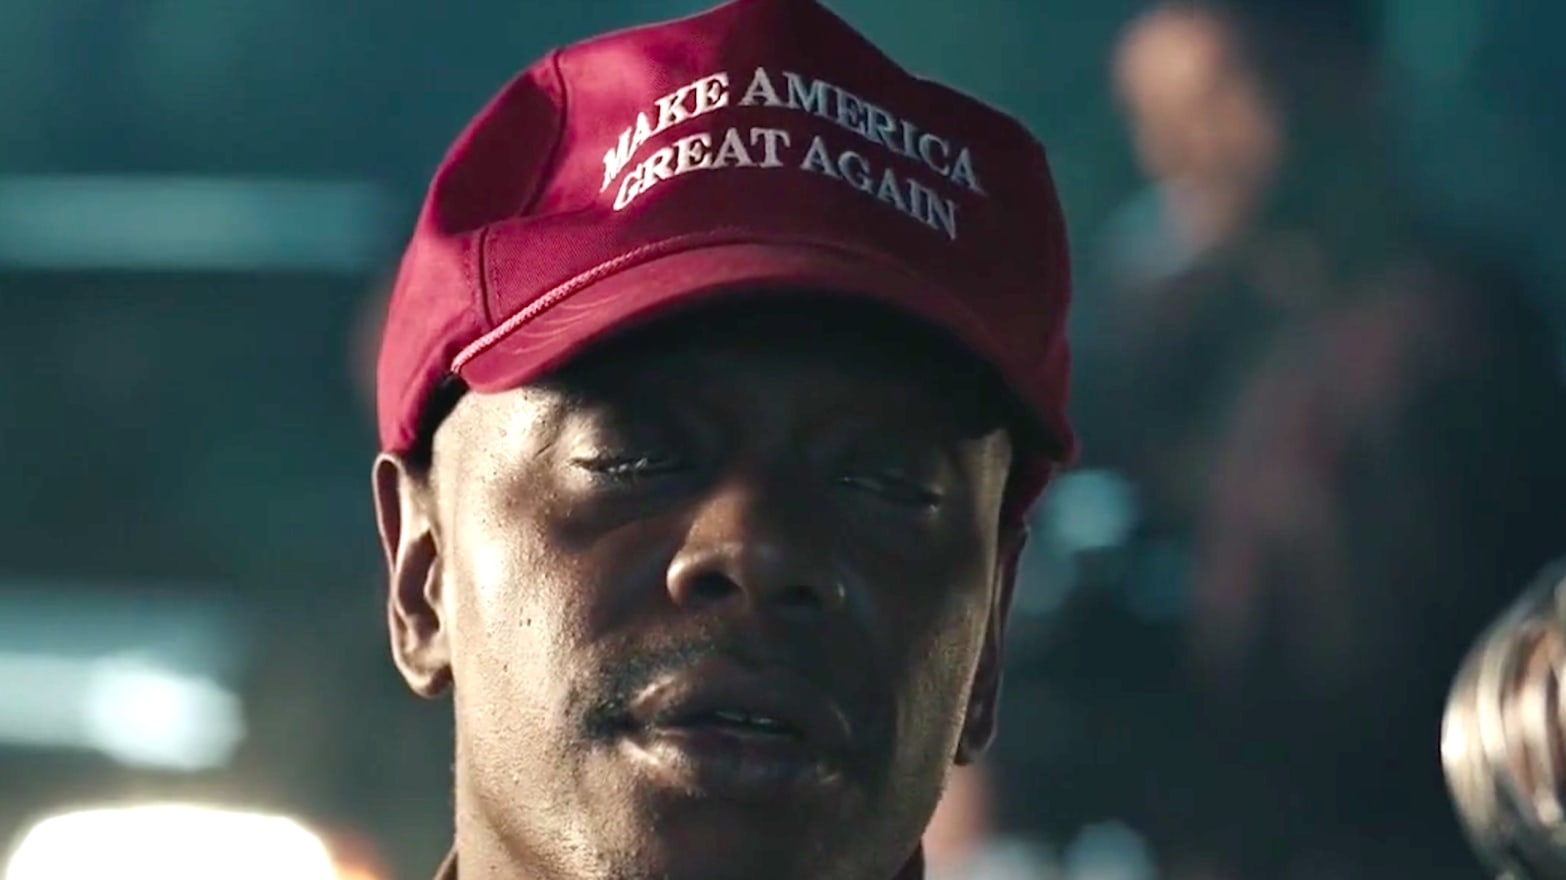 Snl Dave Chappelle S Black White Supremacist Clayton Bigsby Loves Donald Trump